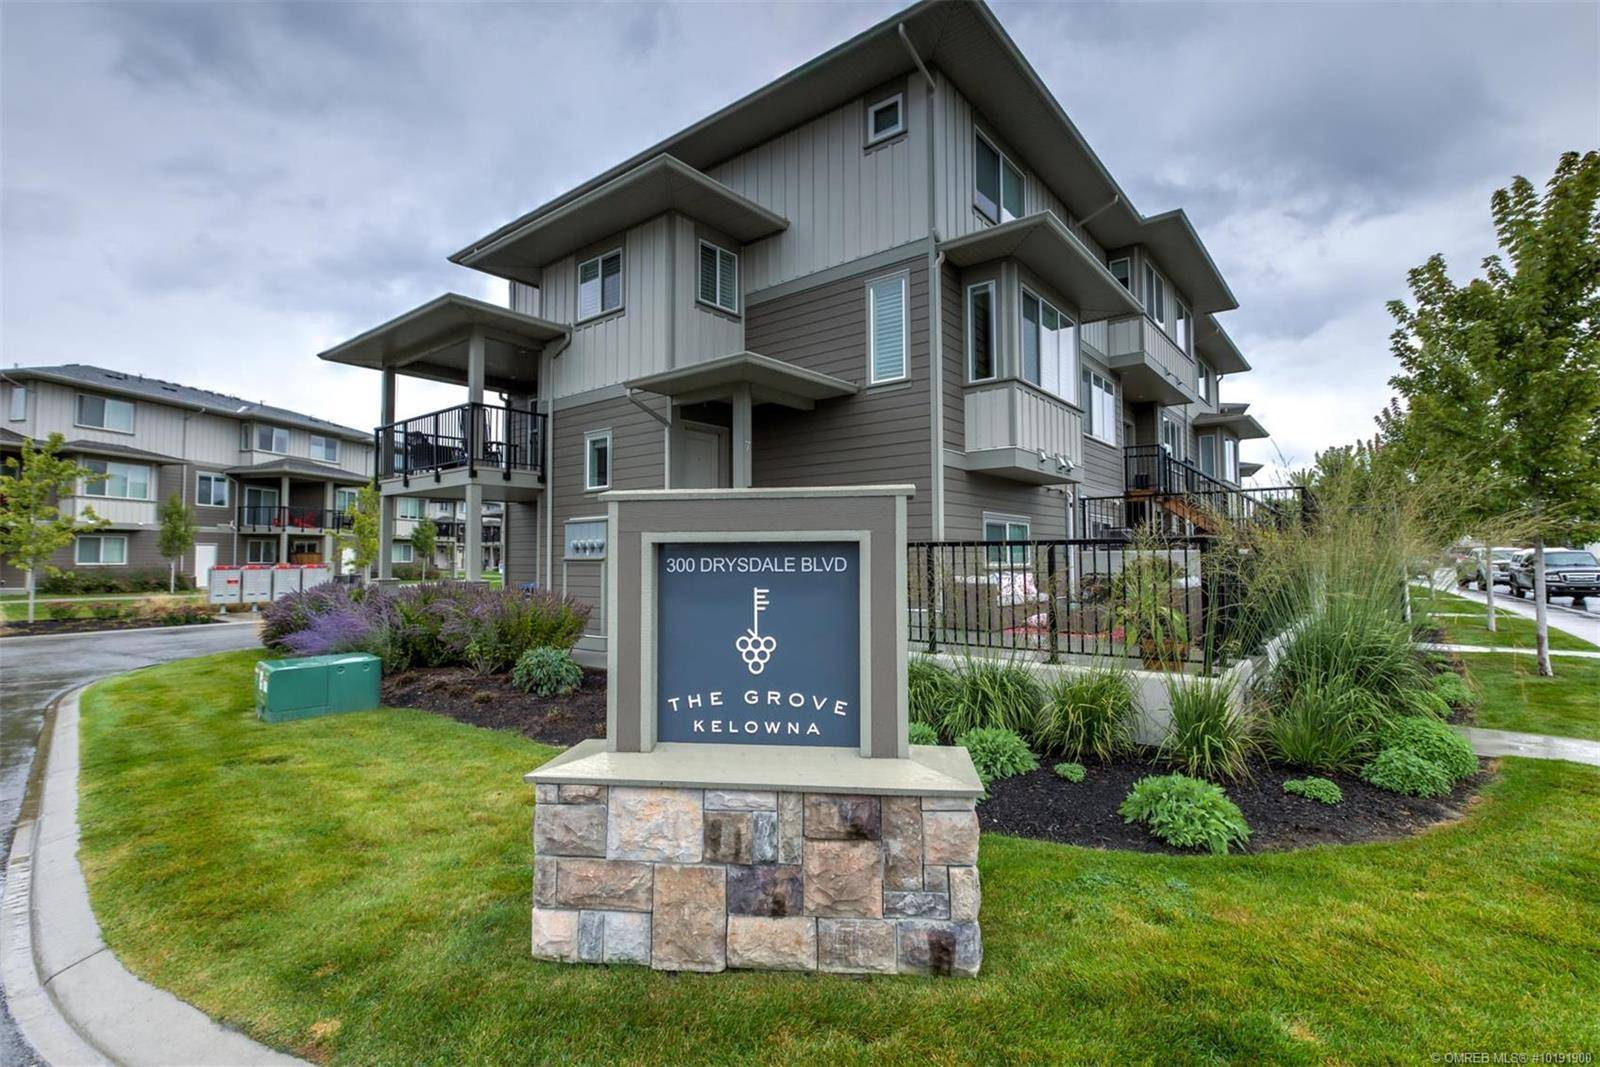 Townhouse for sale at 300 Drysdale Blvd Unit 6 Kelowna British Columbia - MLS: 10191900